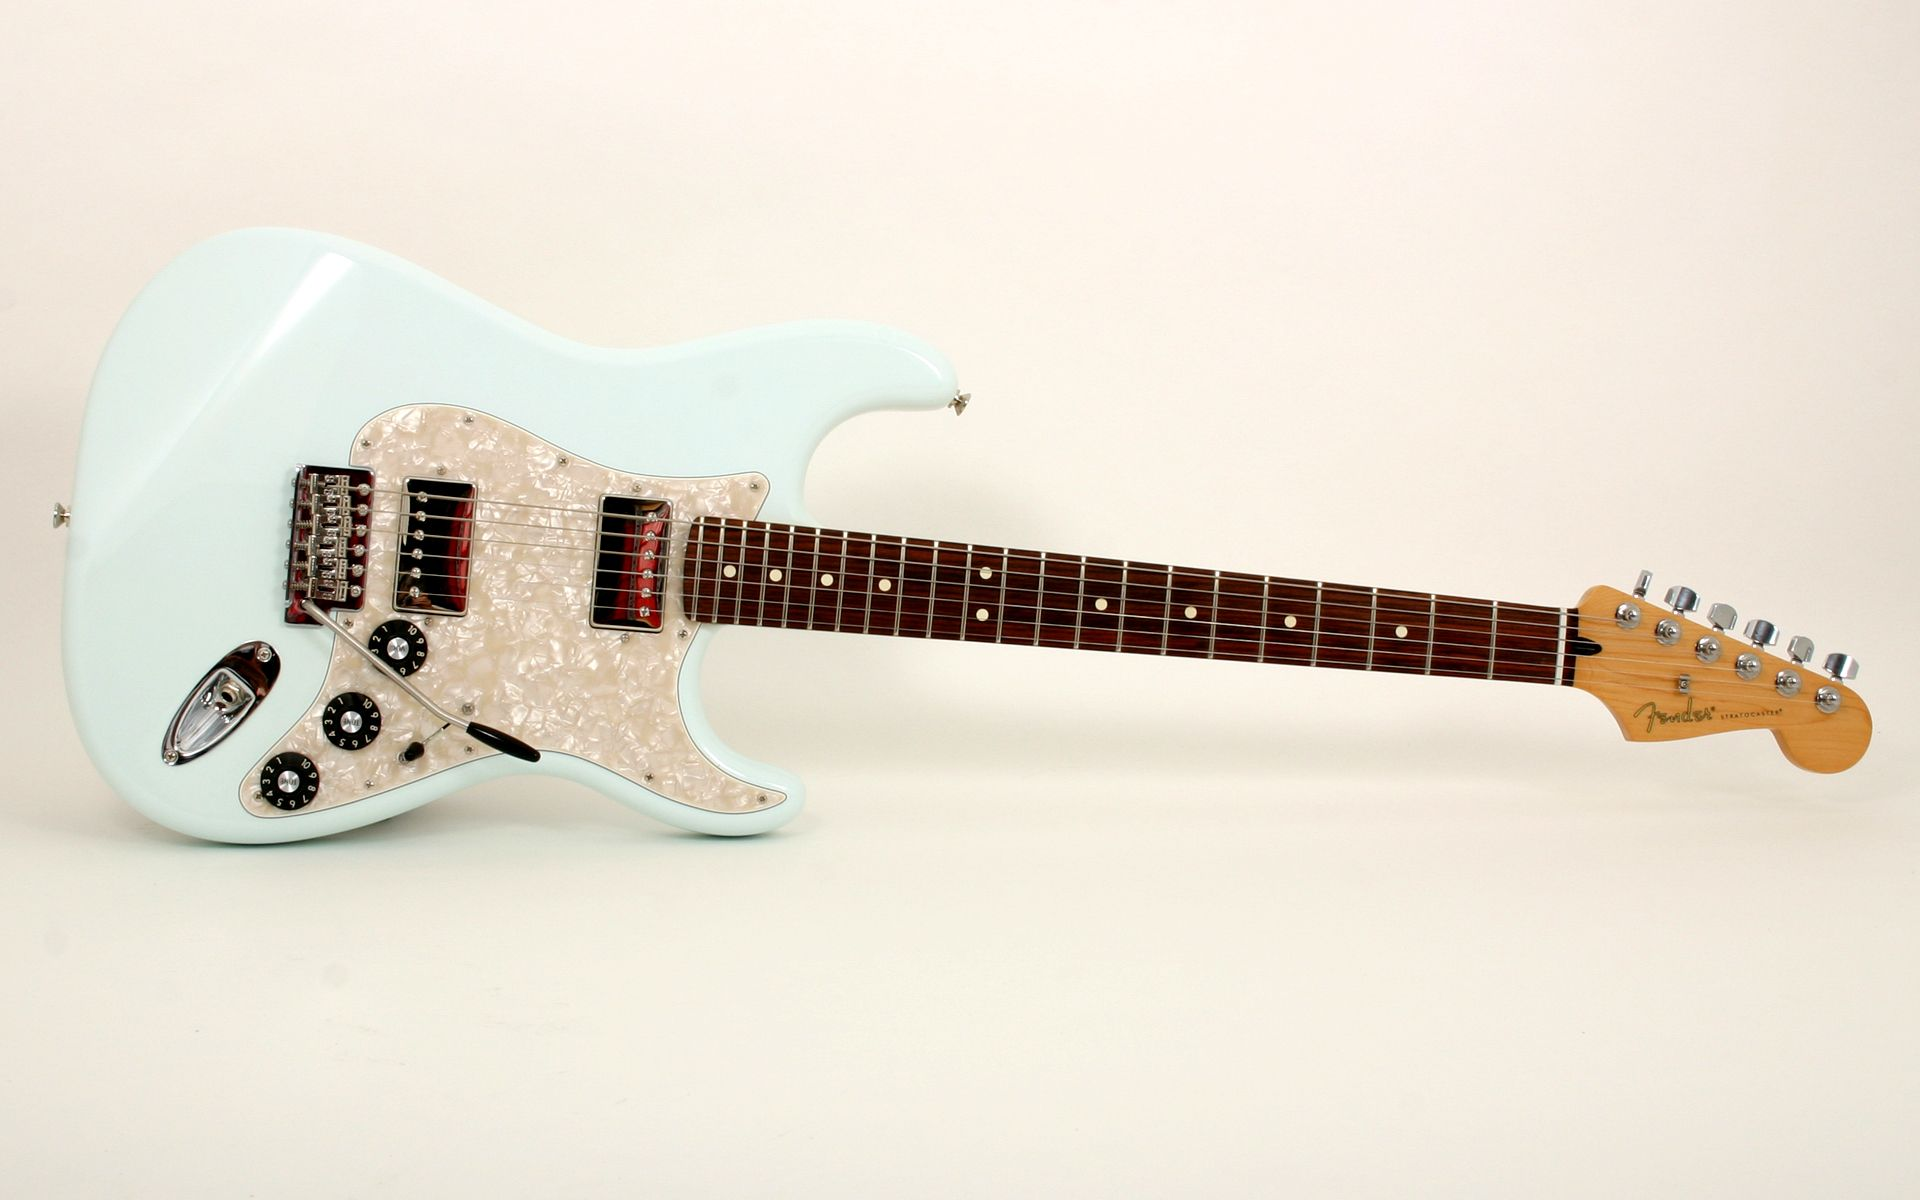 acme guitar works. blacktop stratocaster hh rosewood fretboard sonic blue  acme .